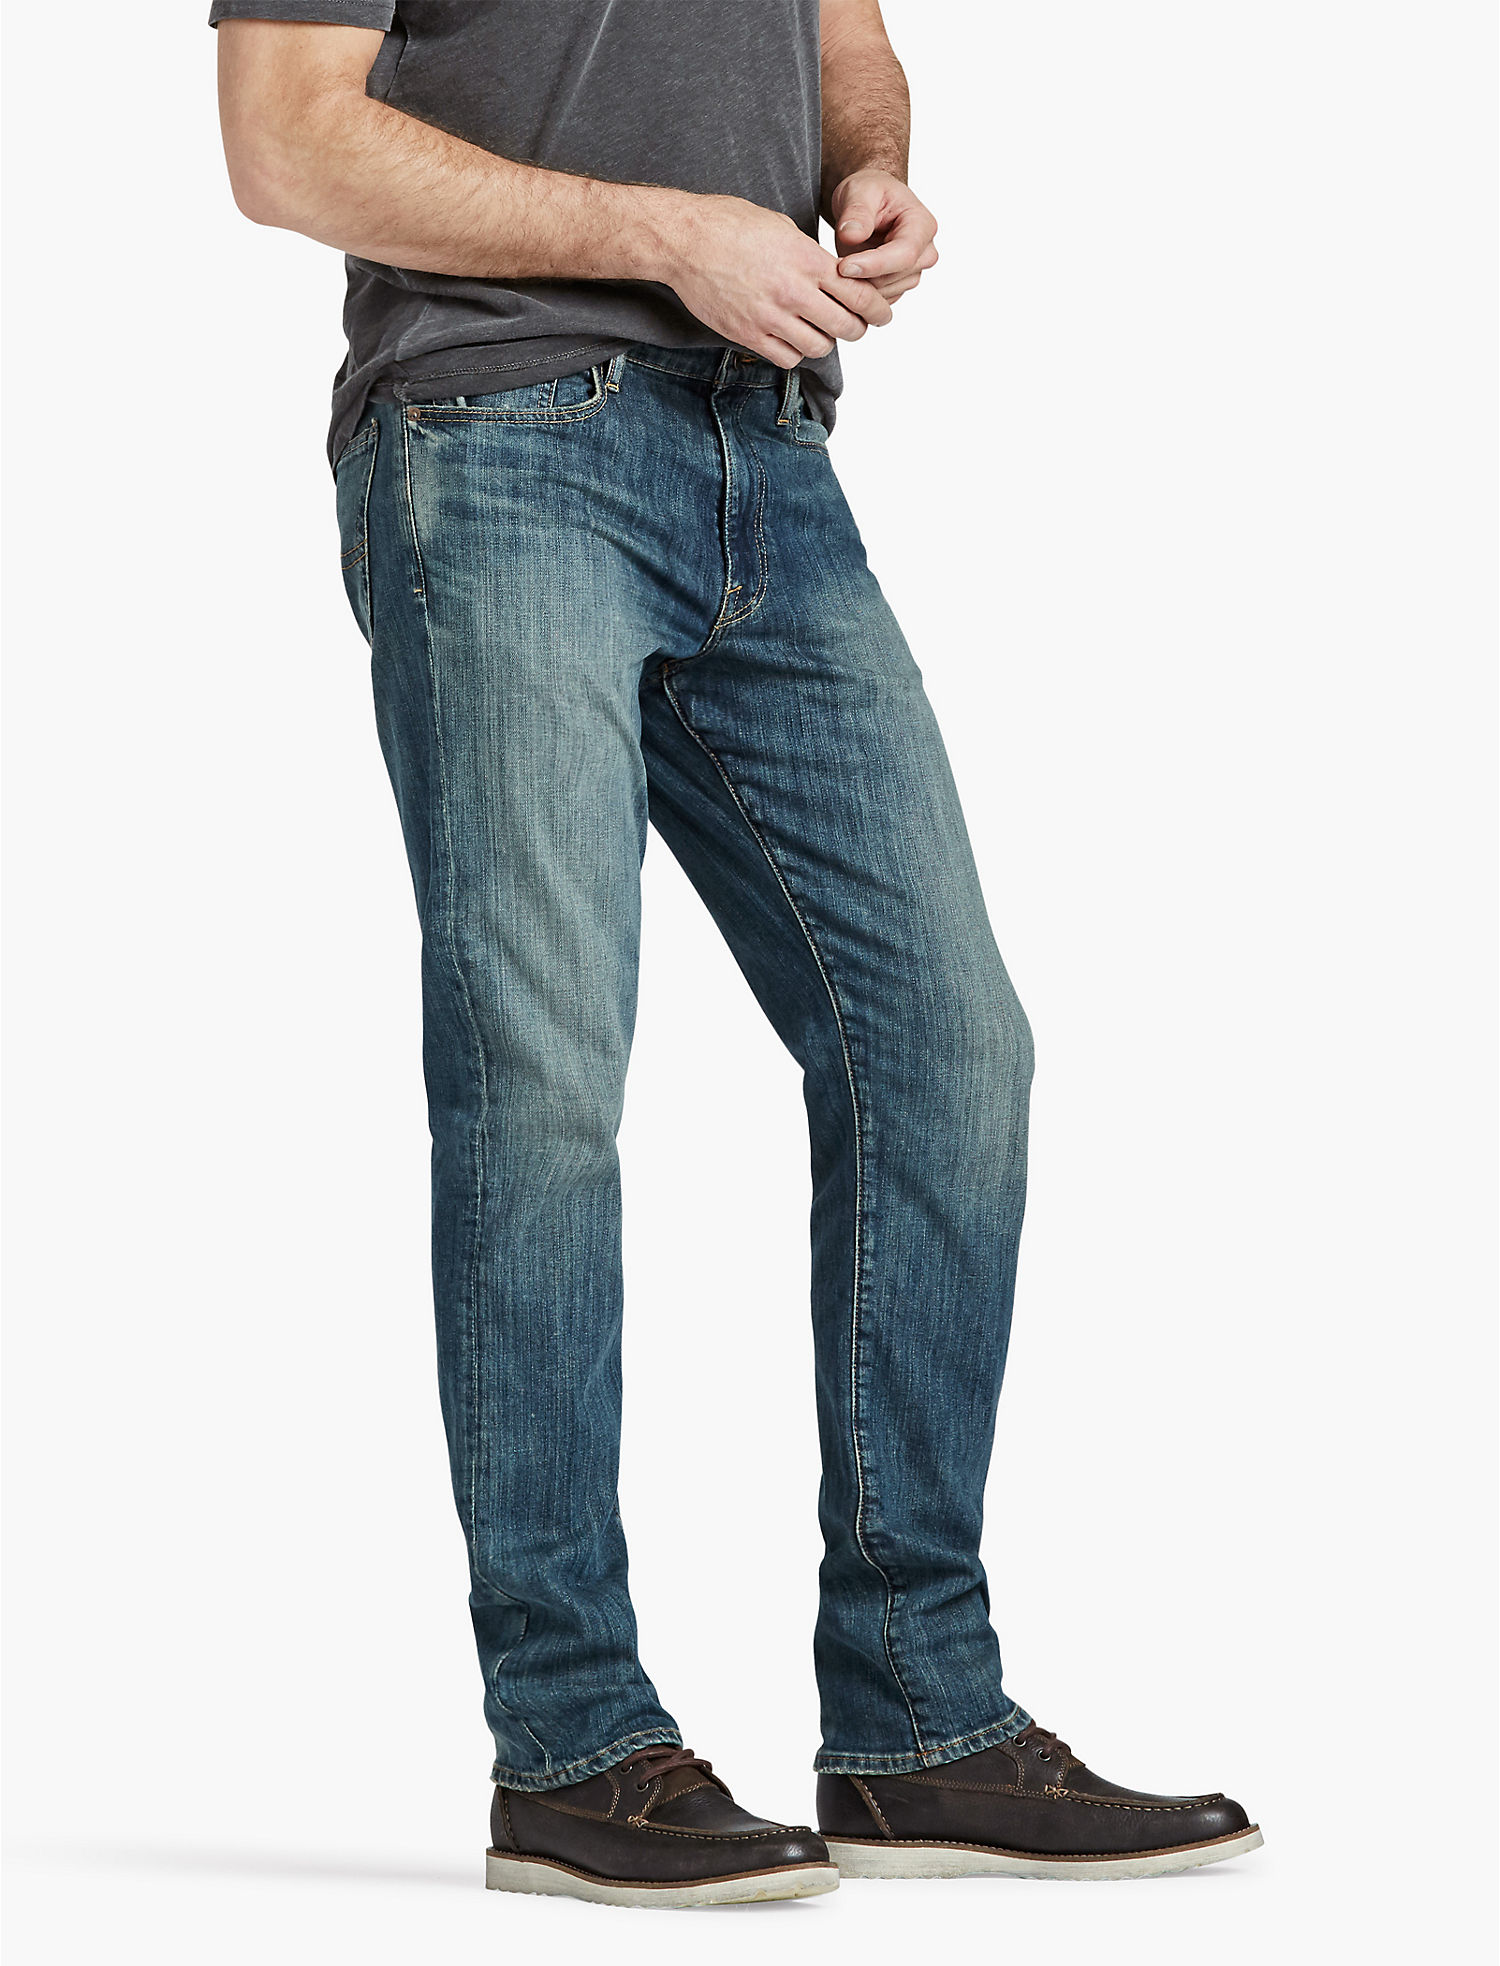 410 Athletic Slim Jean | Lucky Brand